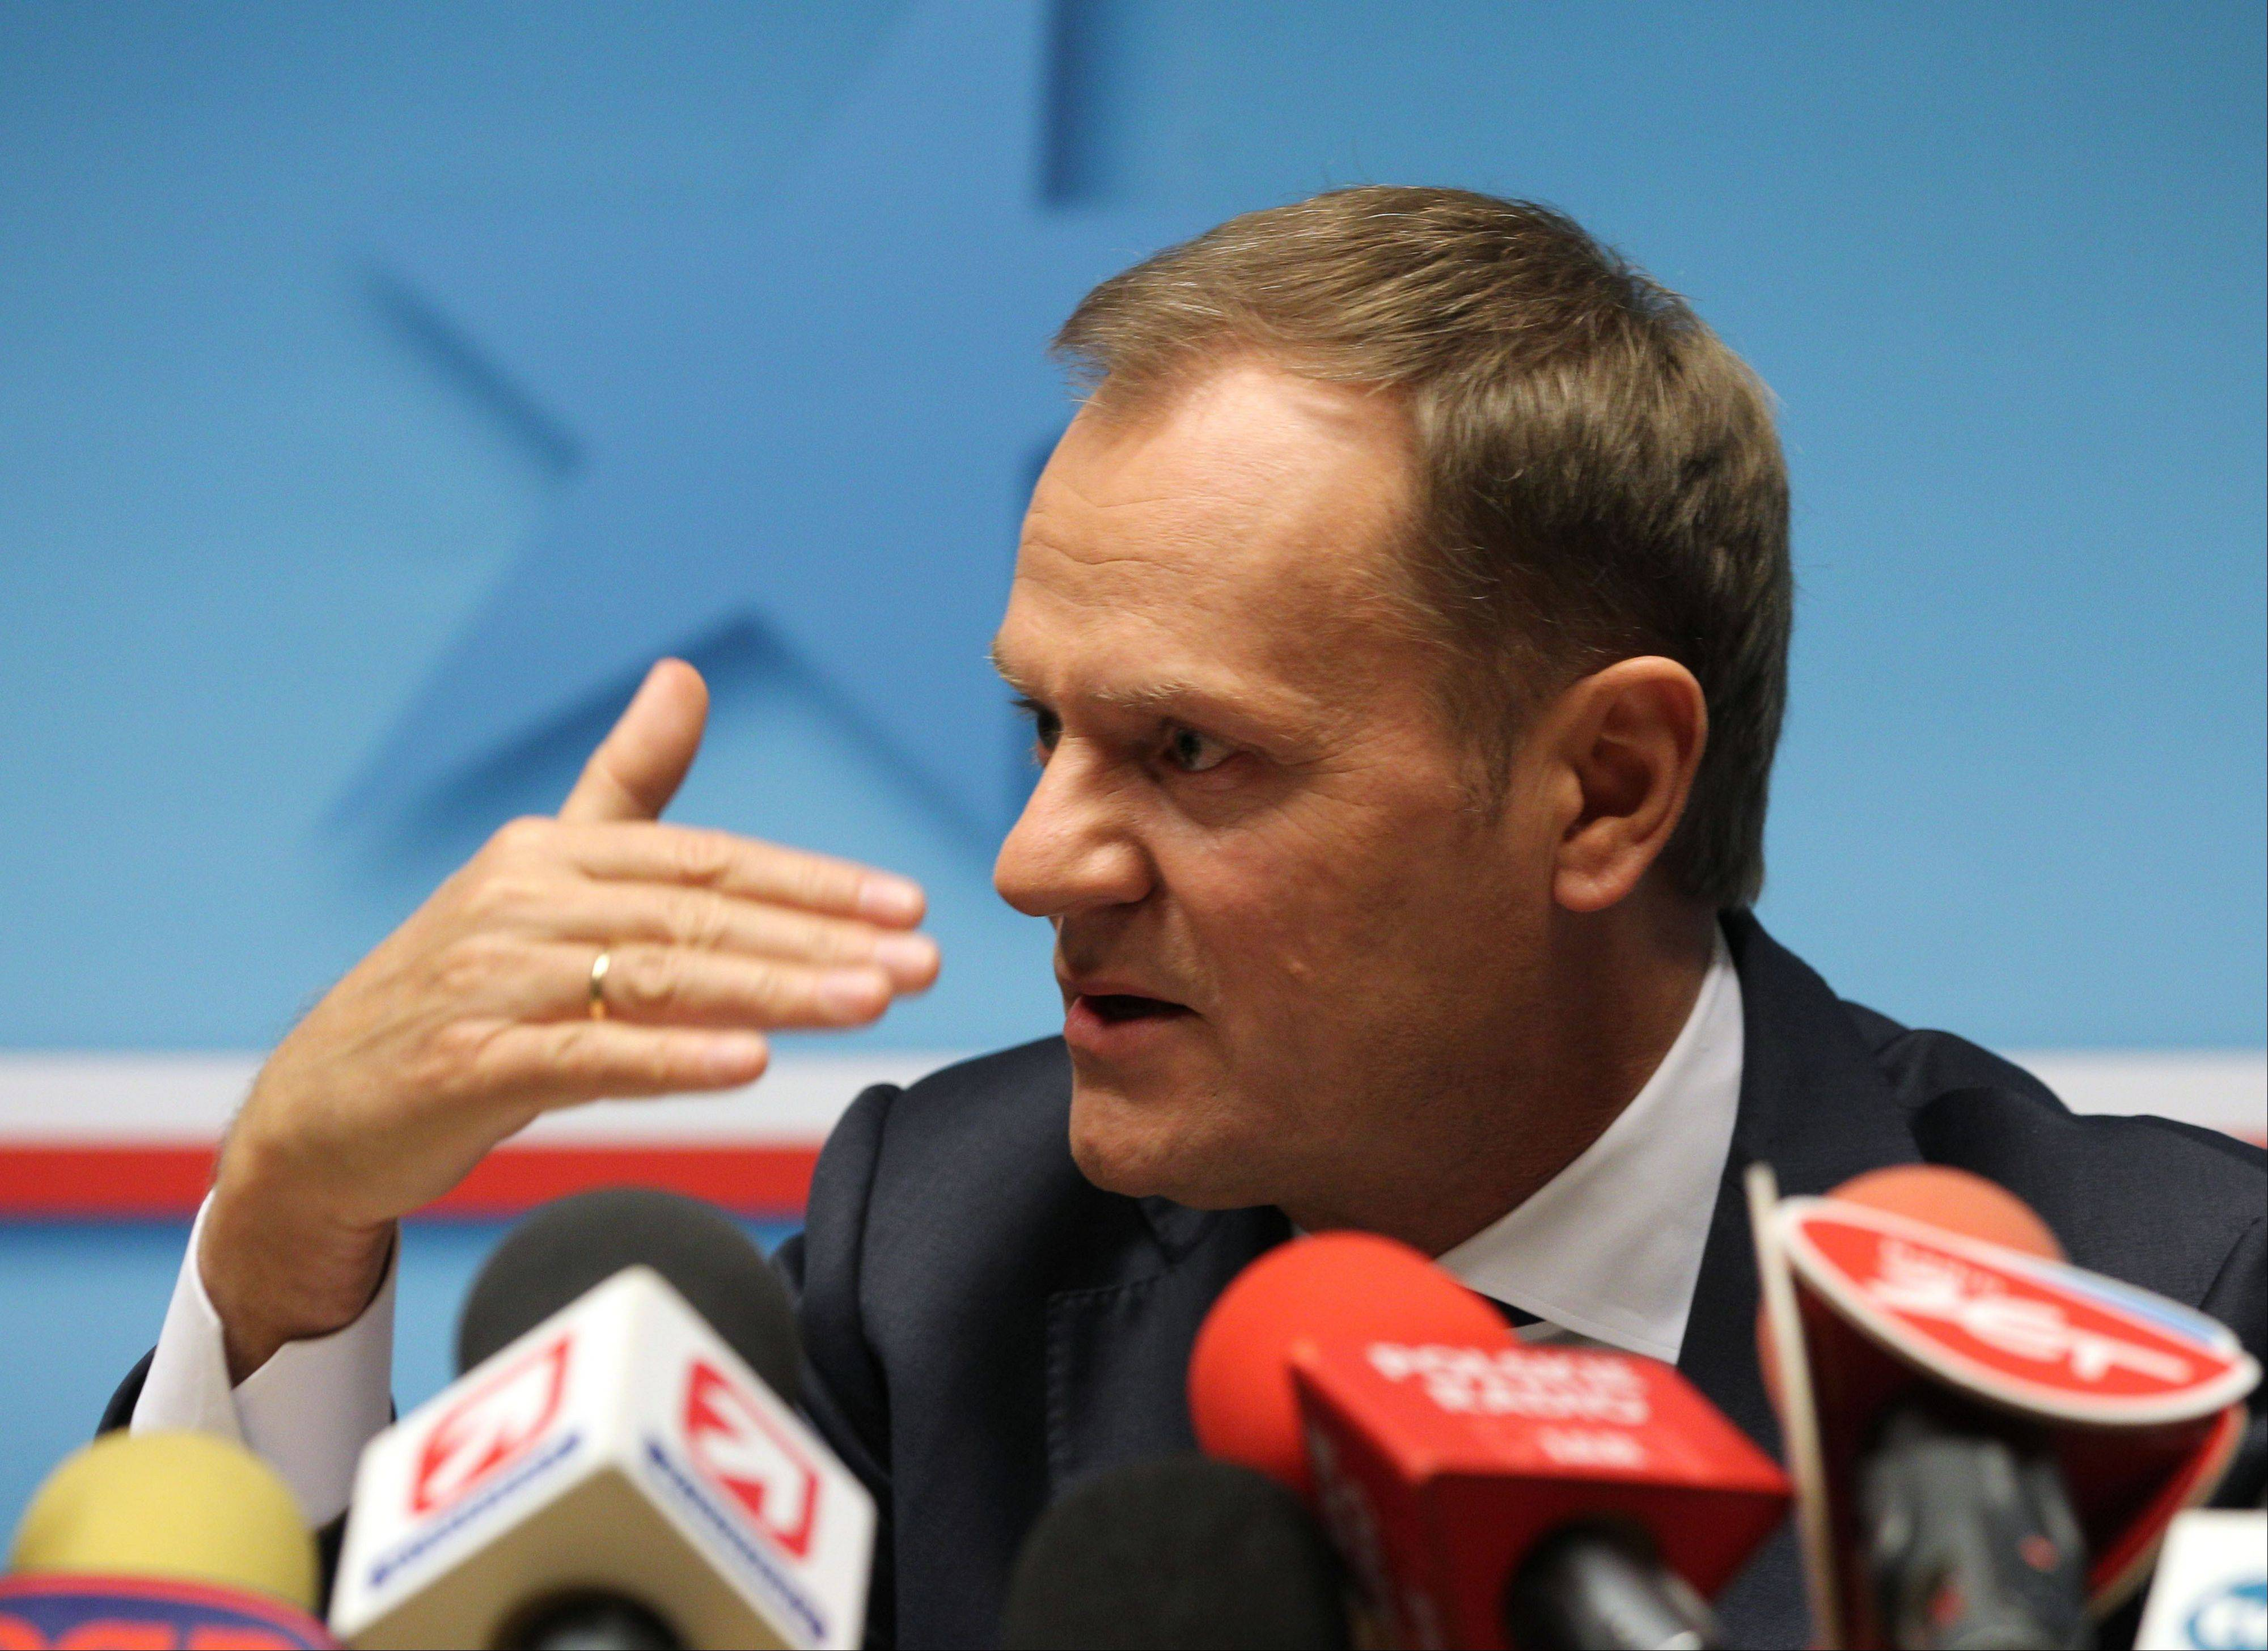 Poland's Prime Minister Donald Tusk addresses the media at the end of a two-day EU summit in Brussels on Friday, Nov. 23, 2012. The Brussels summit has ended without an agreement on the 27-member union's next seven-year budget.